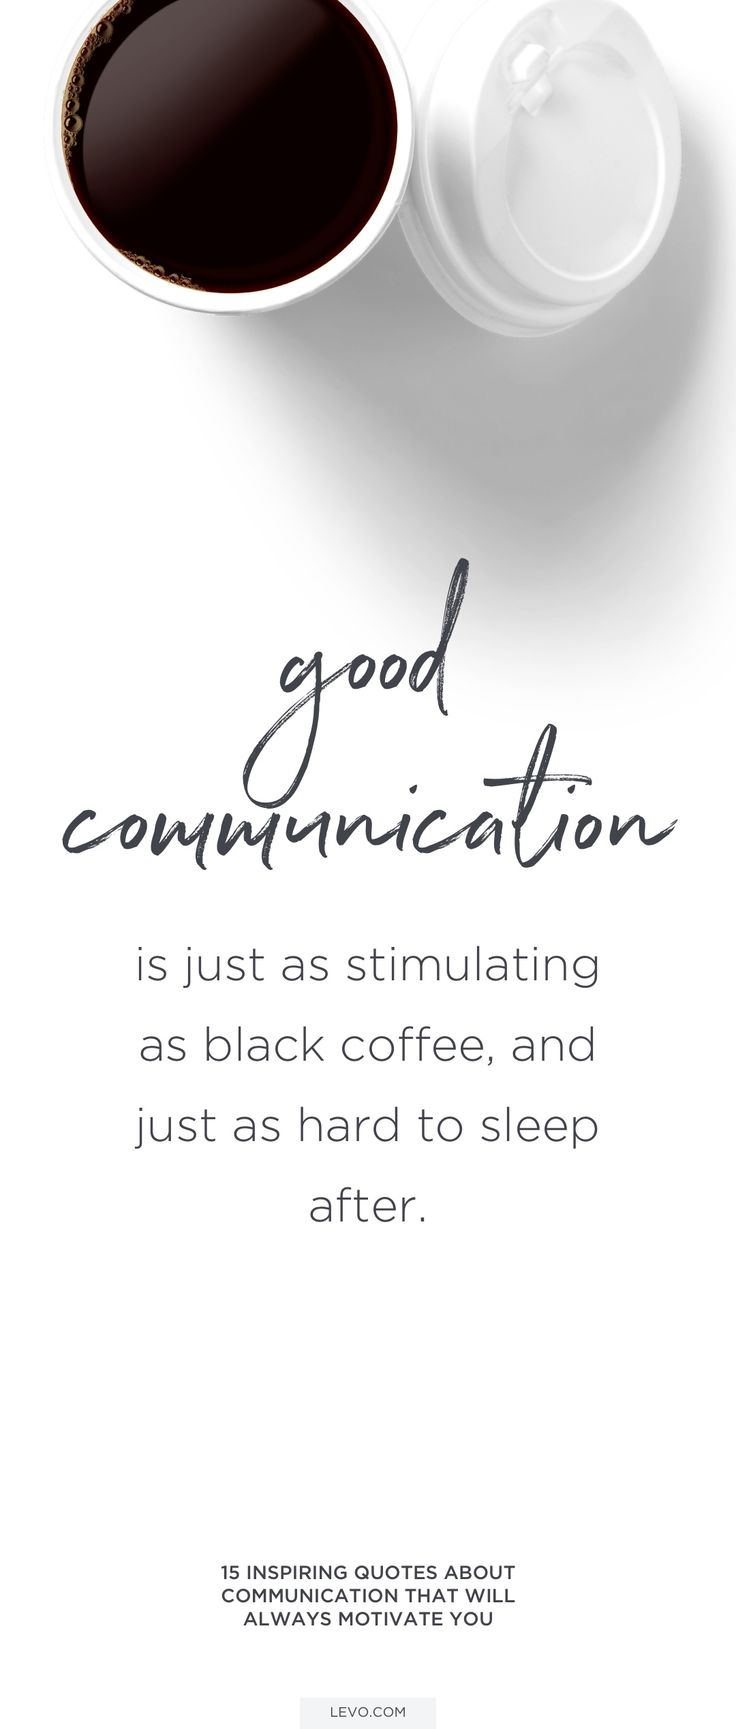 Quotes about communication - this career advice is KEY to communicating effectively.